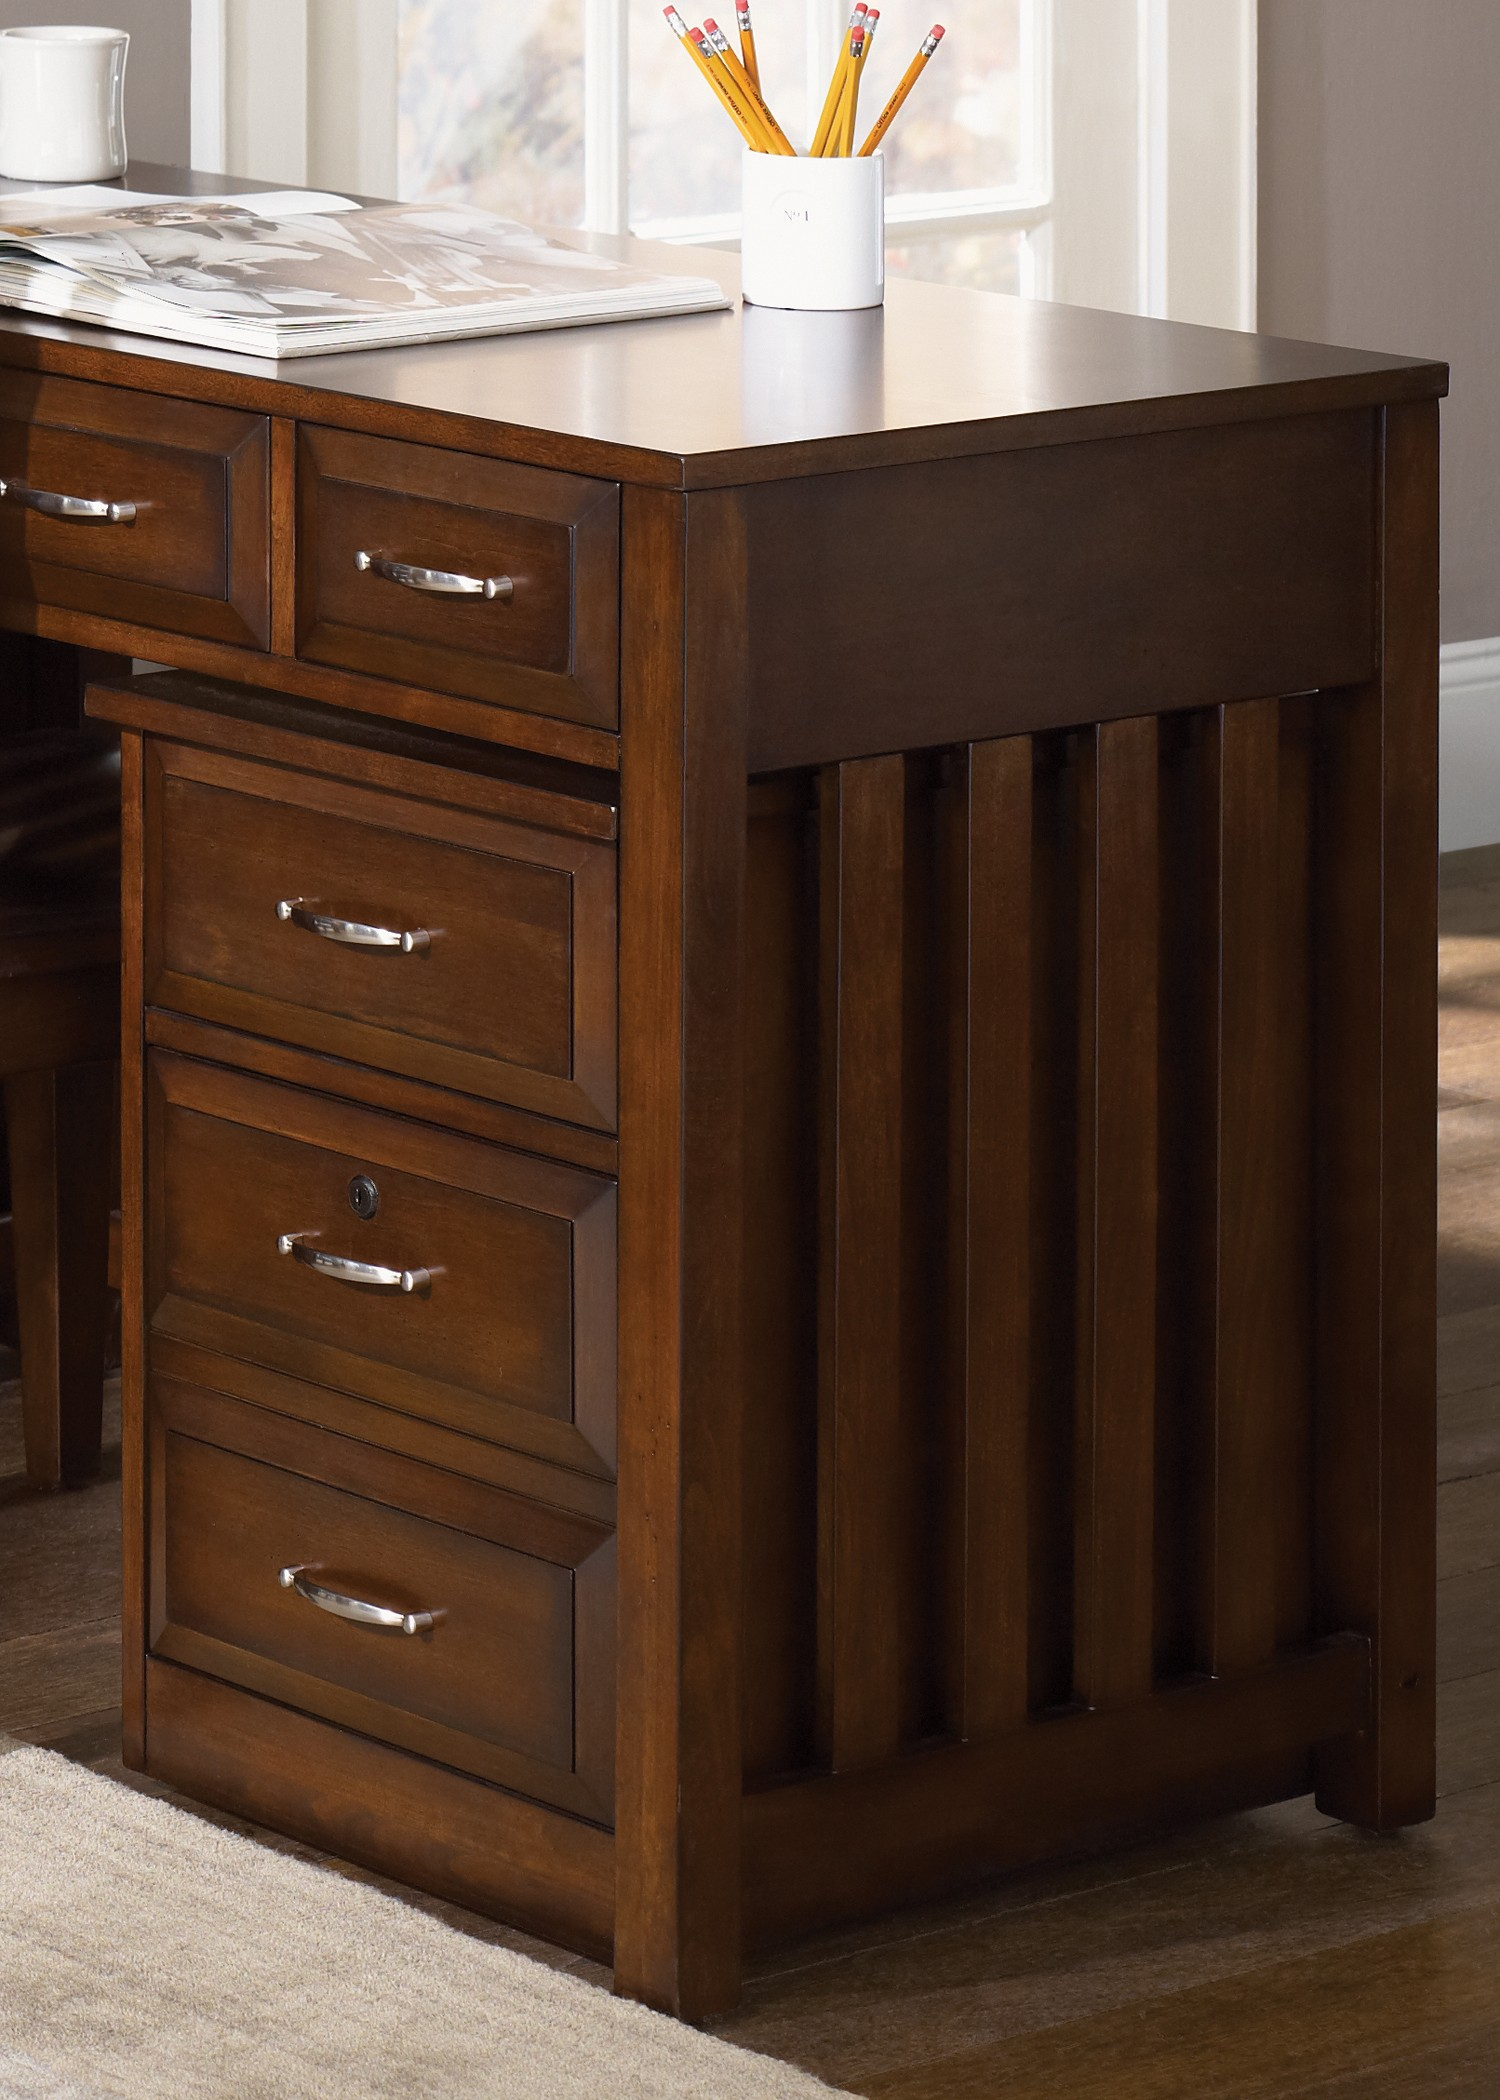 Hampton Bay Cherry Mobile File Cabinet From Liberty 718